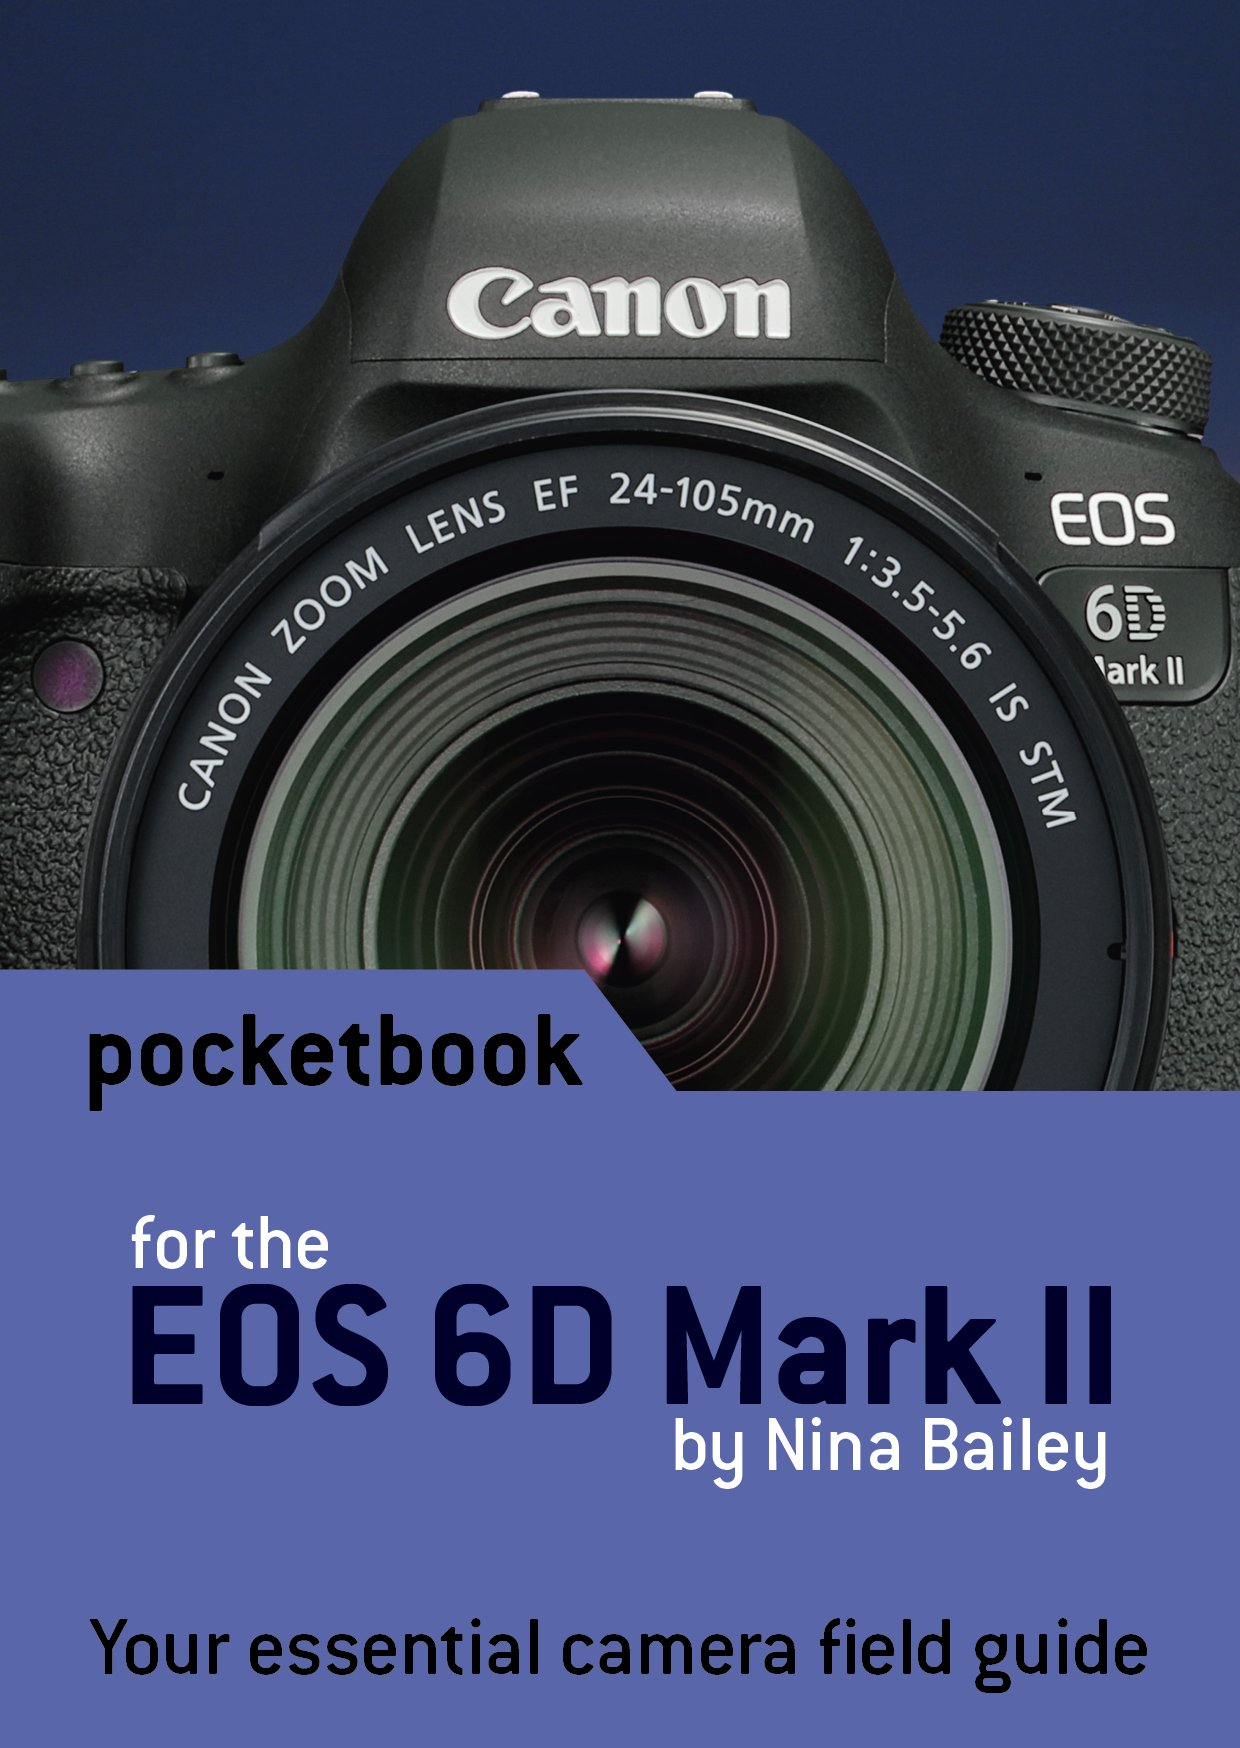 Canon EOS 6D Mark II Pocketbook: camera field guide: Amazon.es ...